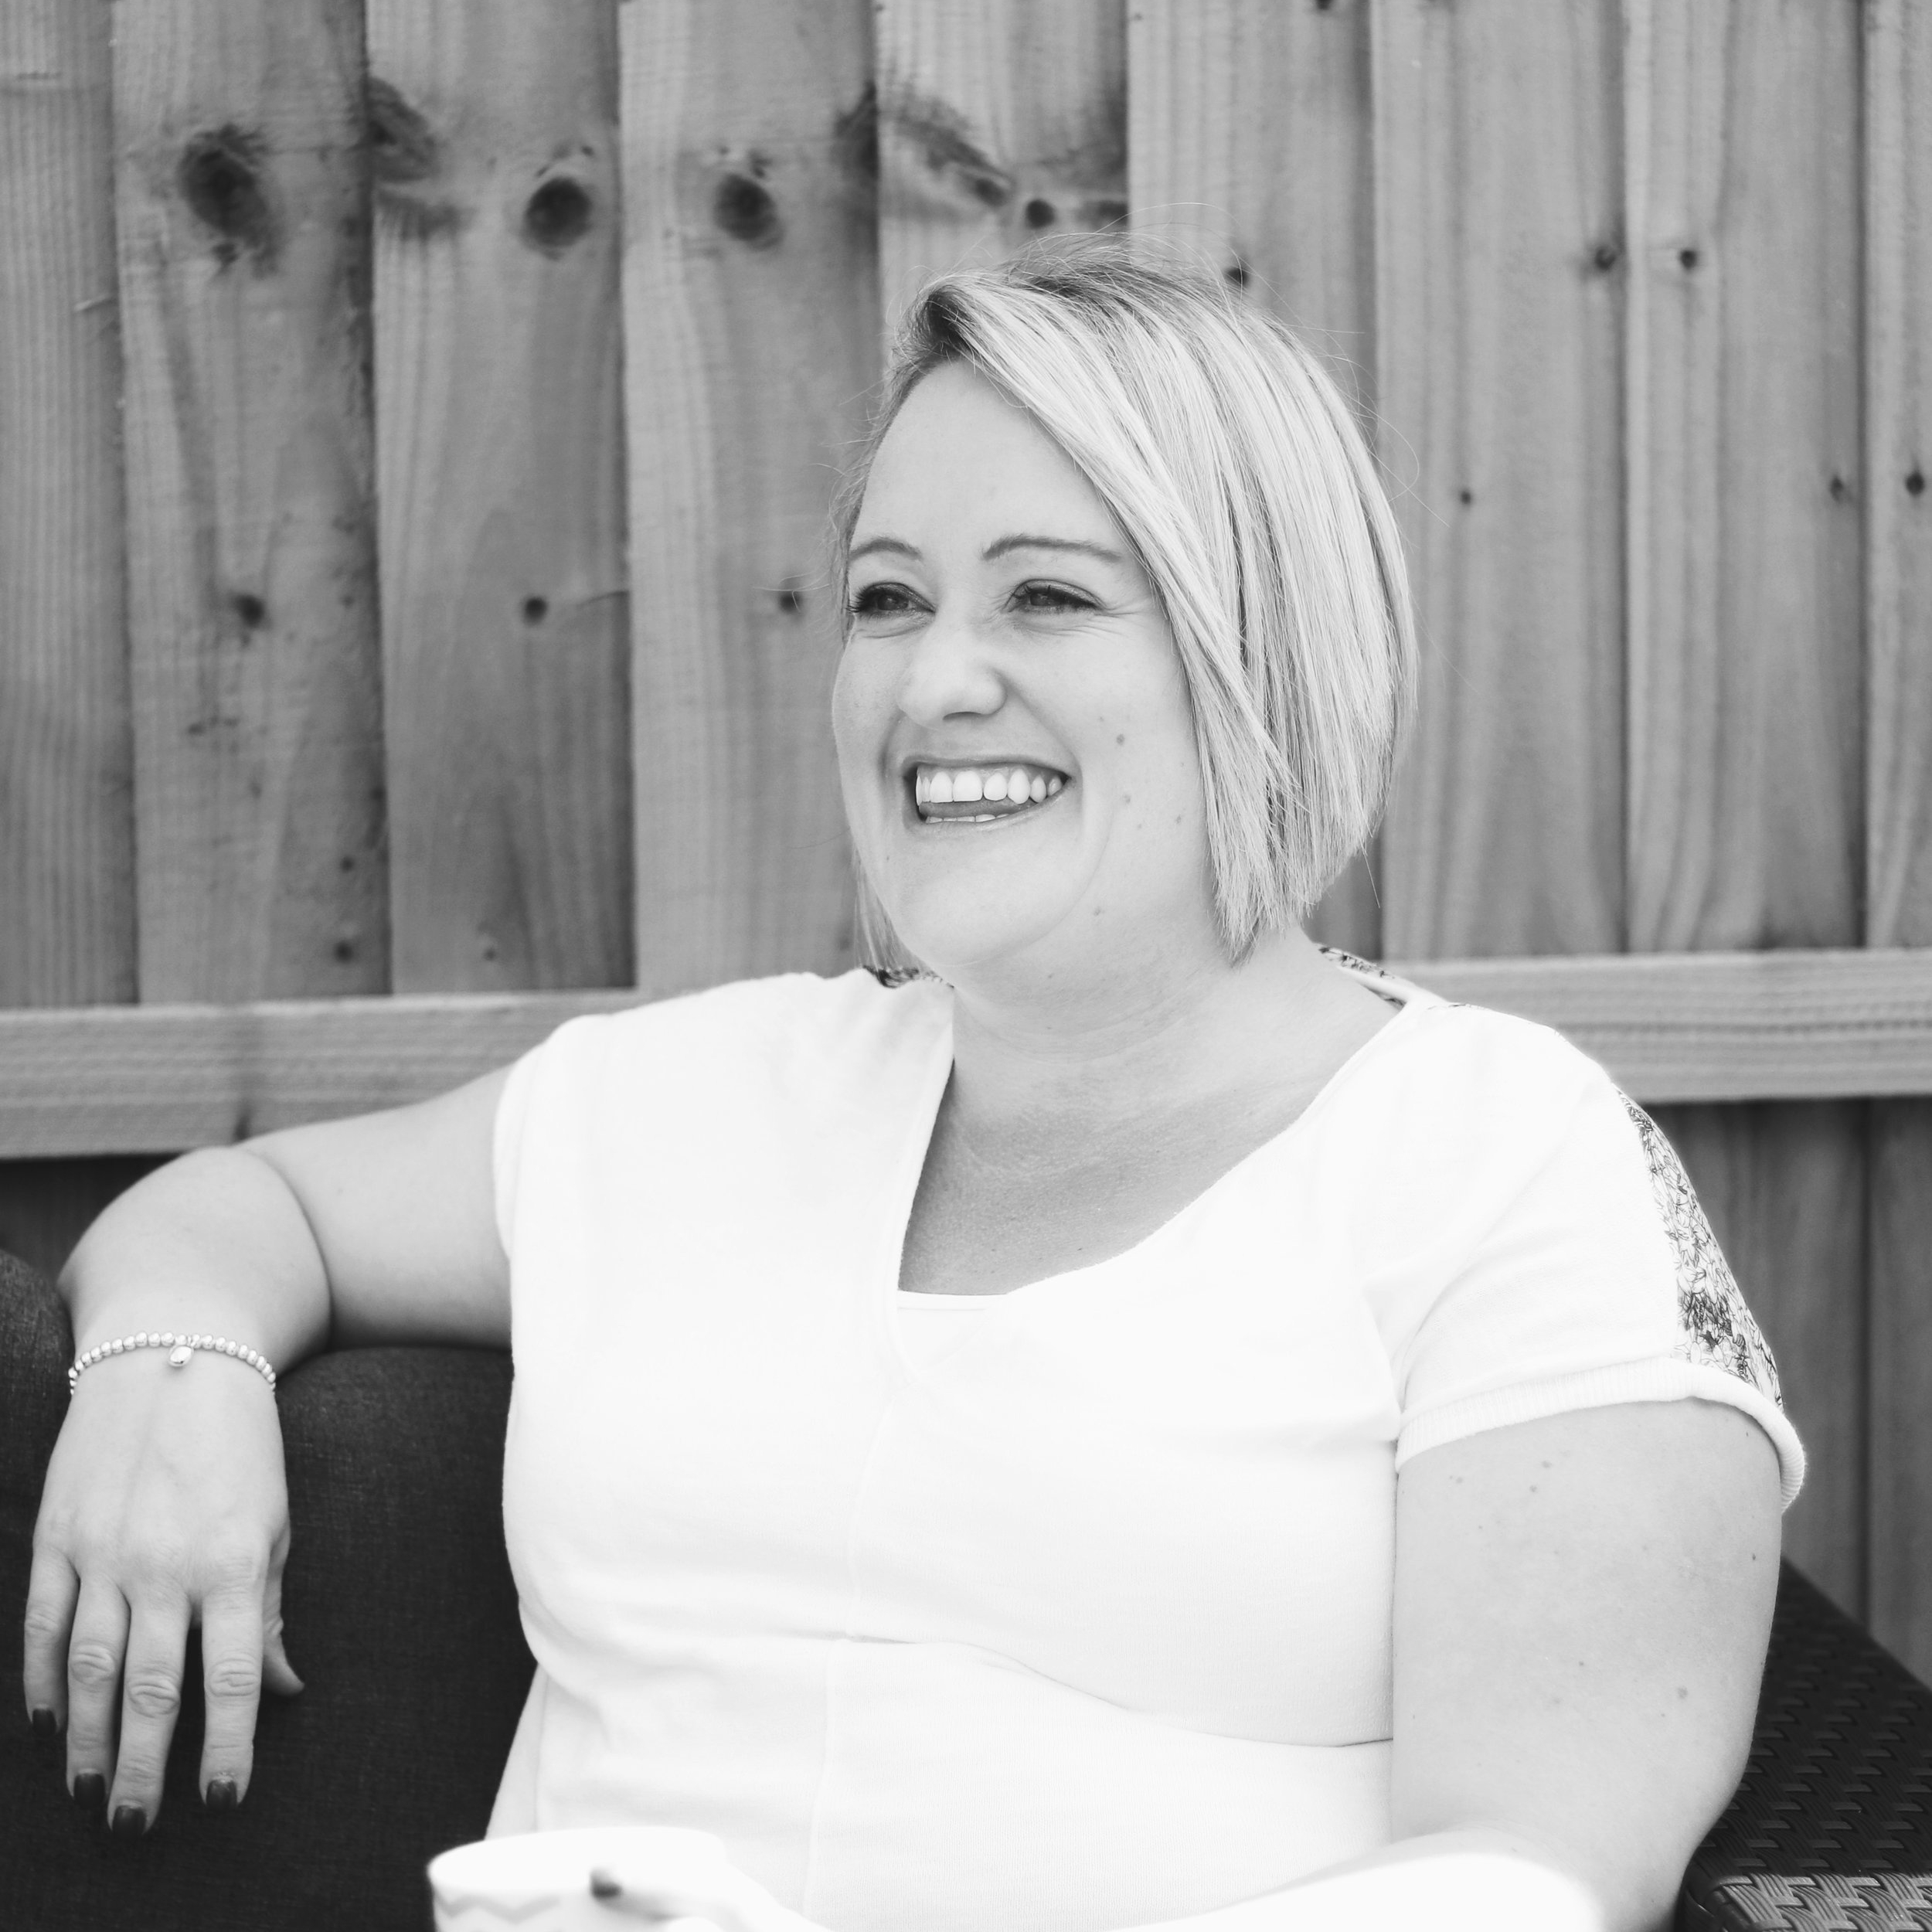 Louise Hayler - Affectionately known as Lou or Weeza, Louise can't live without her hair straighteners or lip balm. She loves the thrill she gets when an event goes live, but she gets almost as big a rush from completing a complicated jigsaw - she's a BIG jigsaw fan.